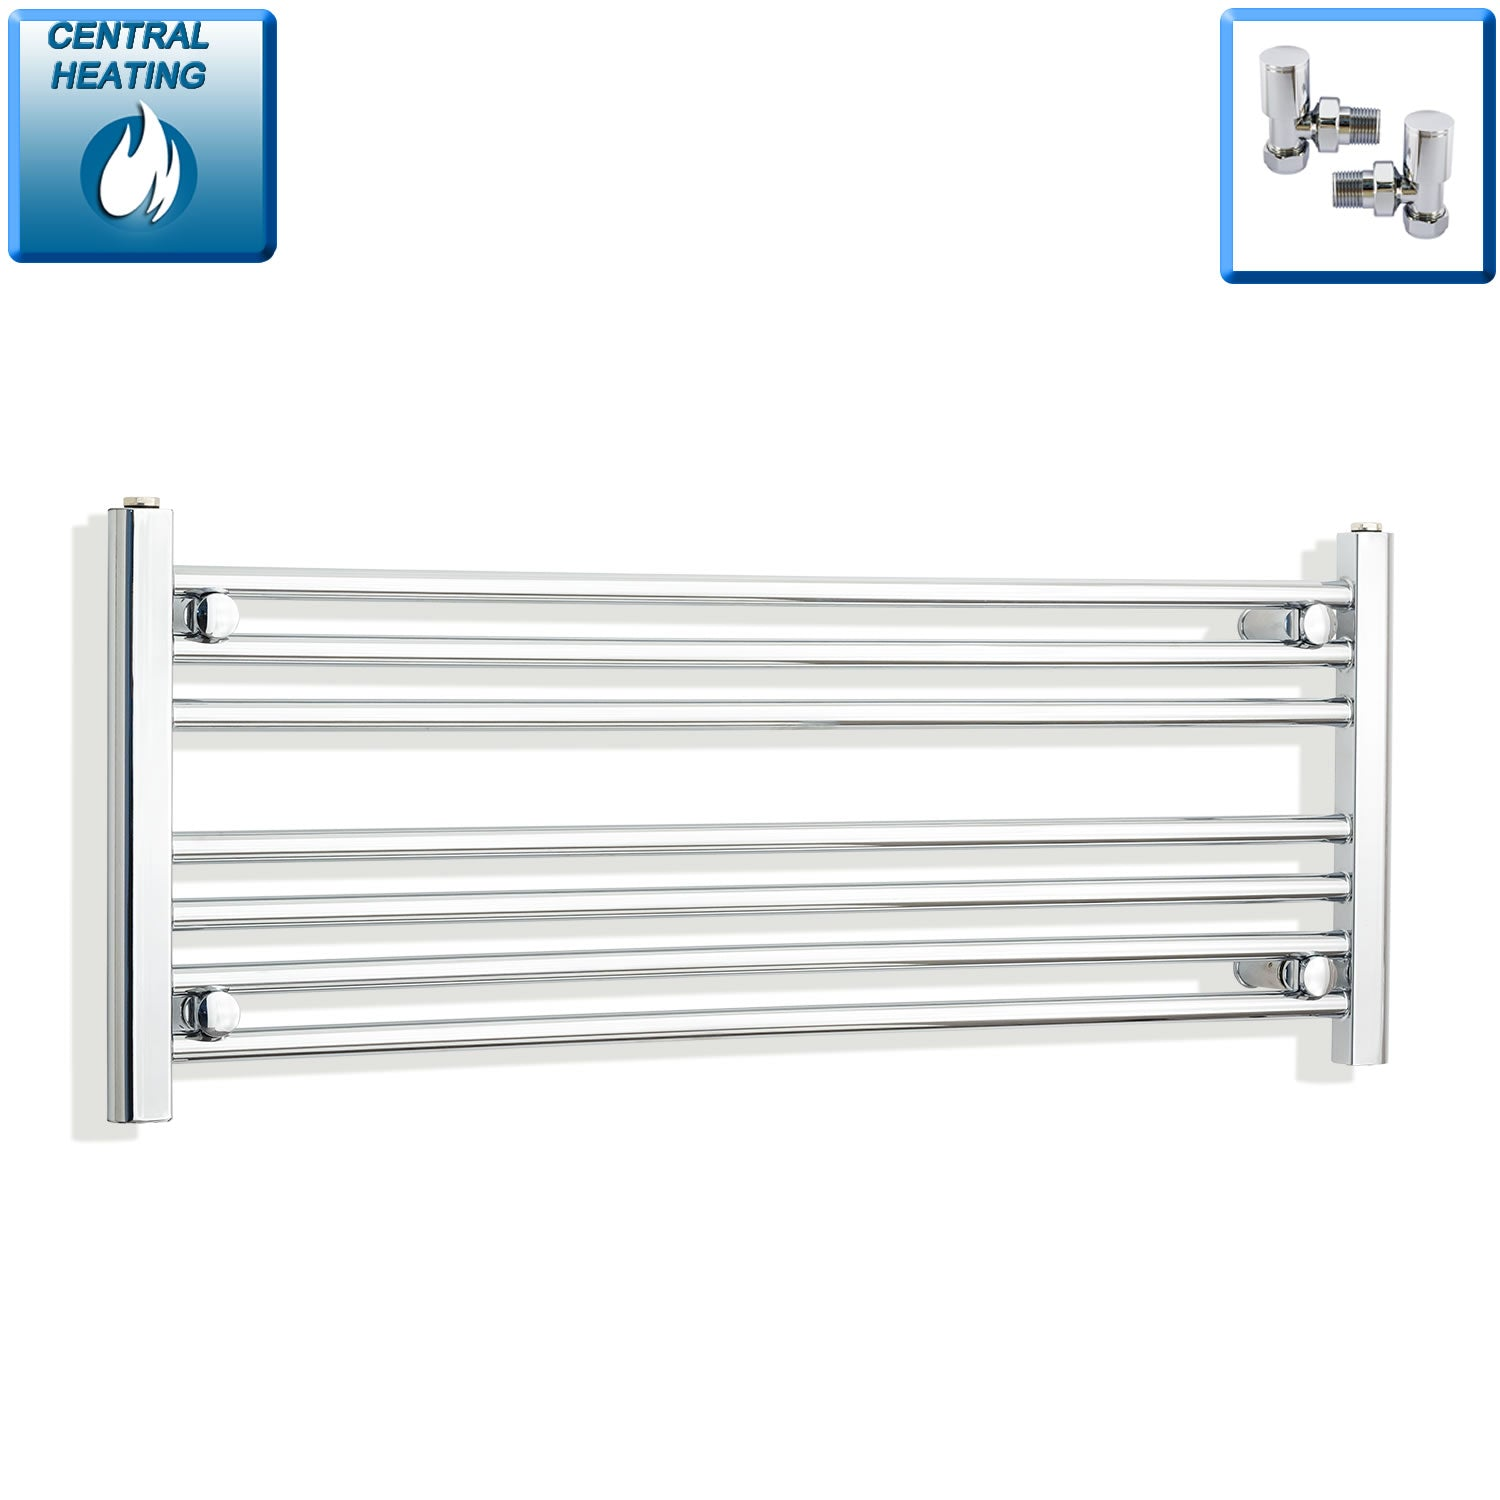 1200mm Wide 400mm High Chrome Towel Rail Radiator With Angled Valve